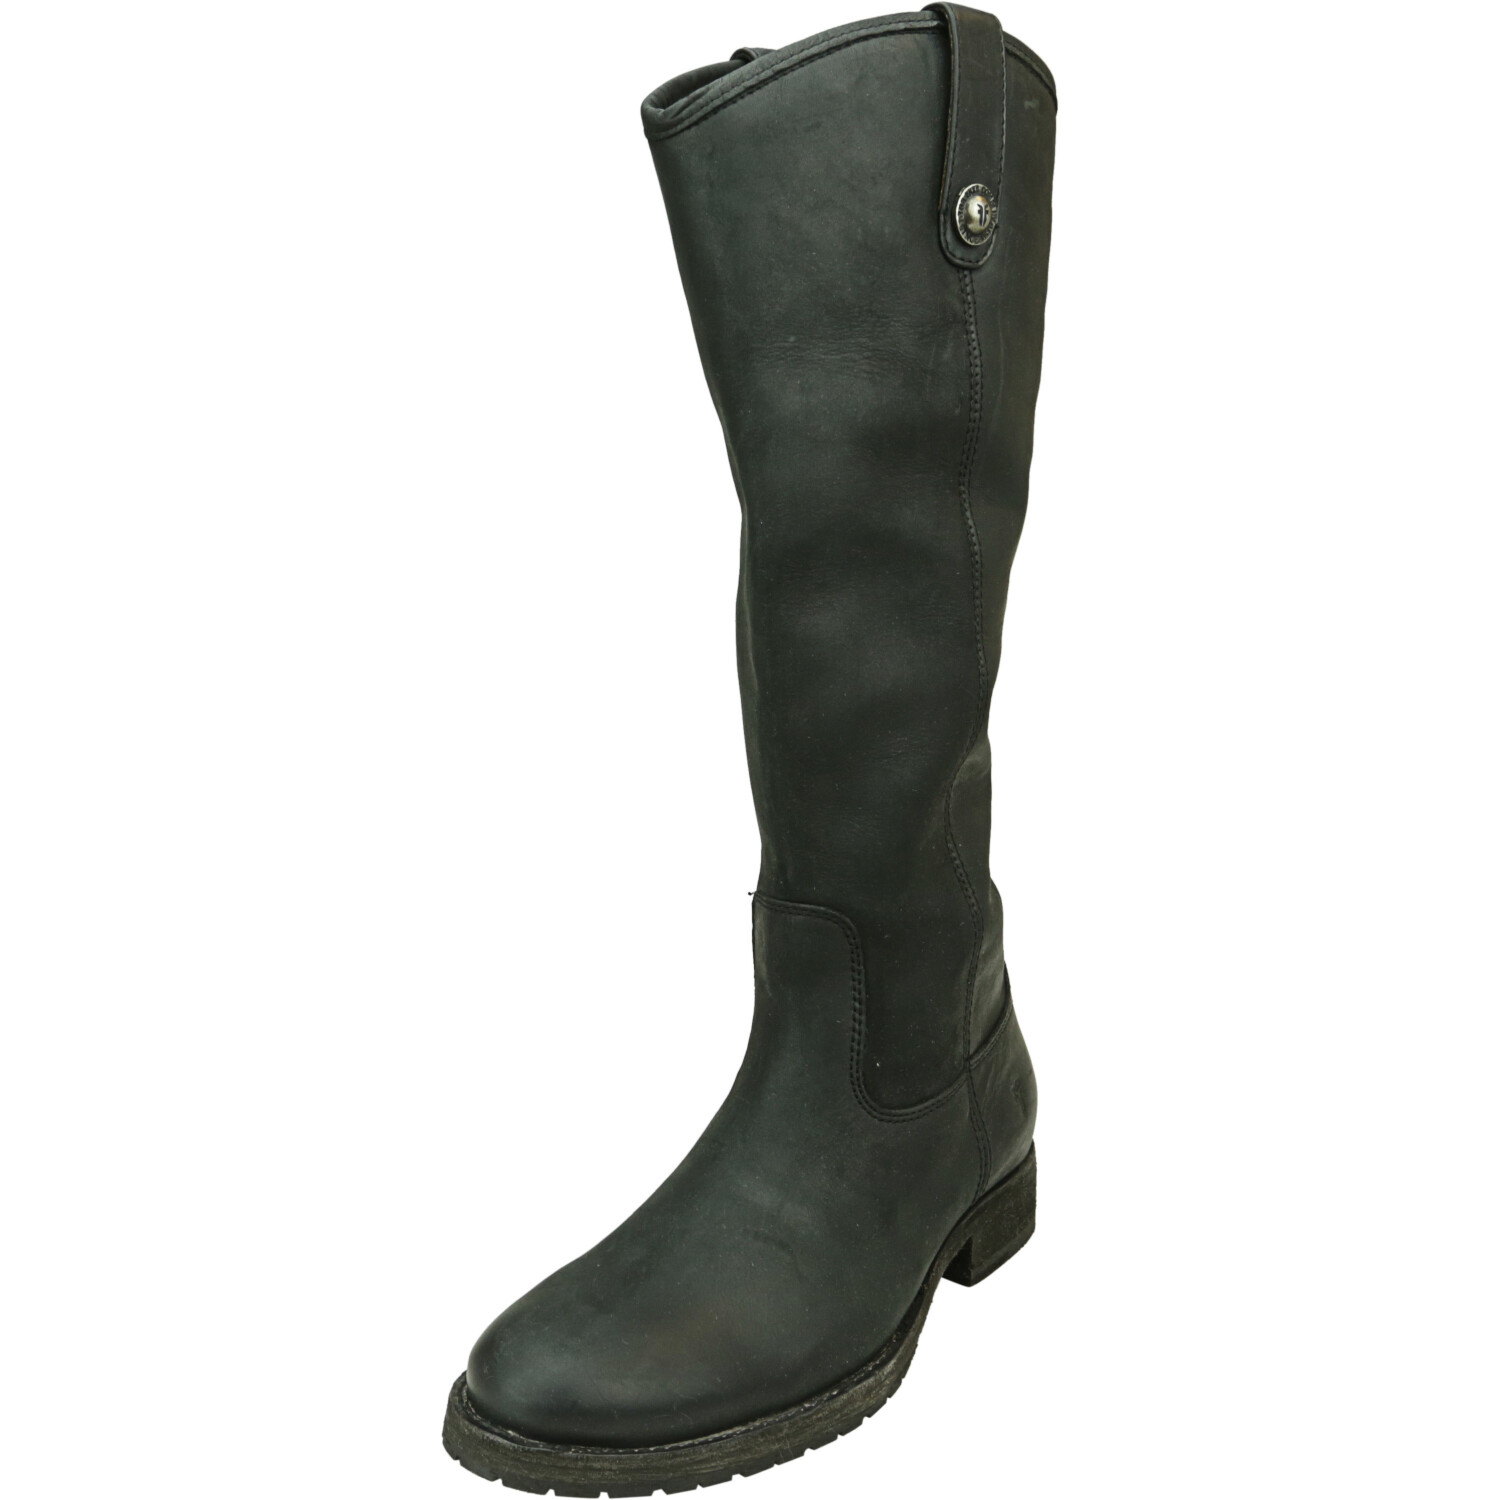 Frye Women's Mellissa Button Black Knee-High Leather Boot - 6M